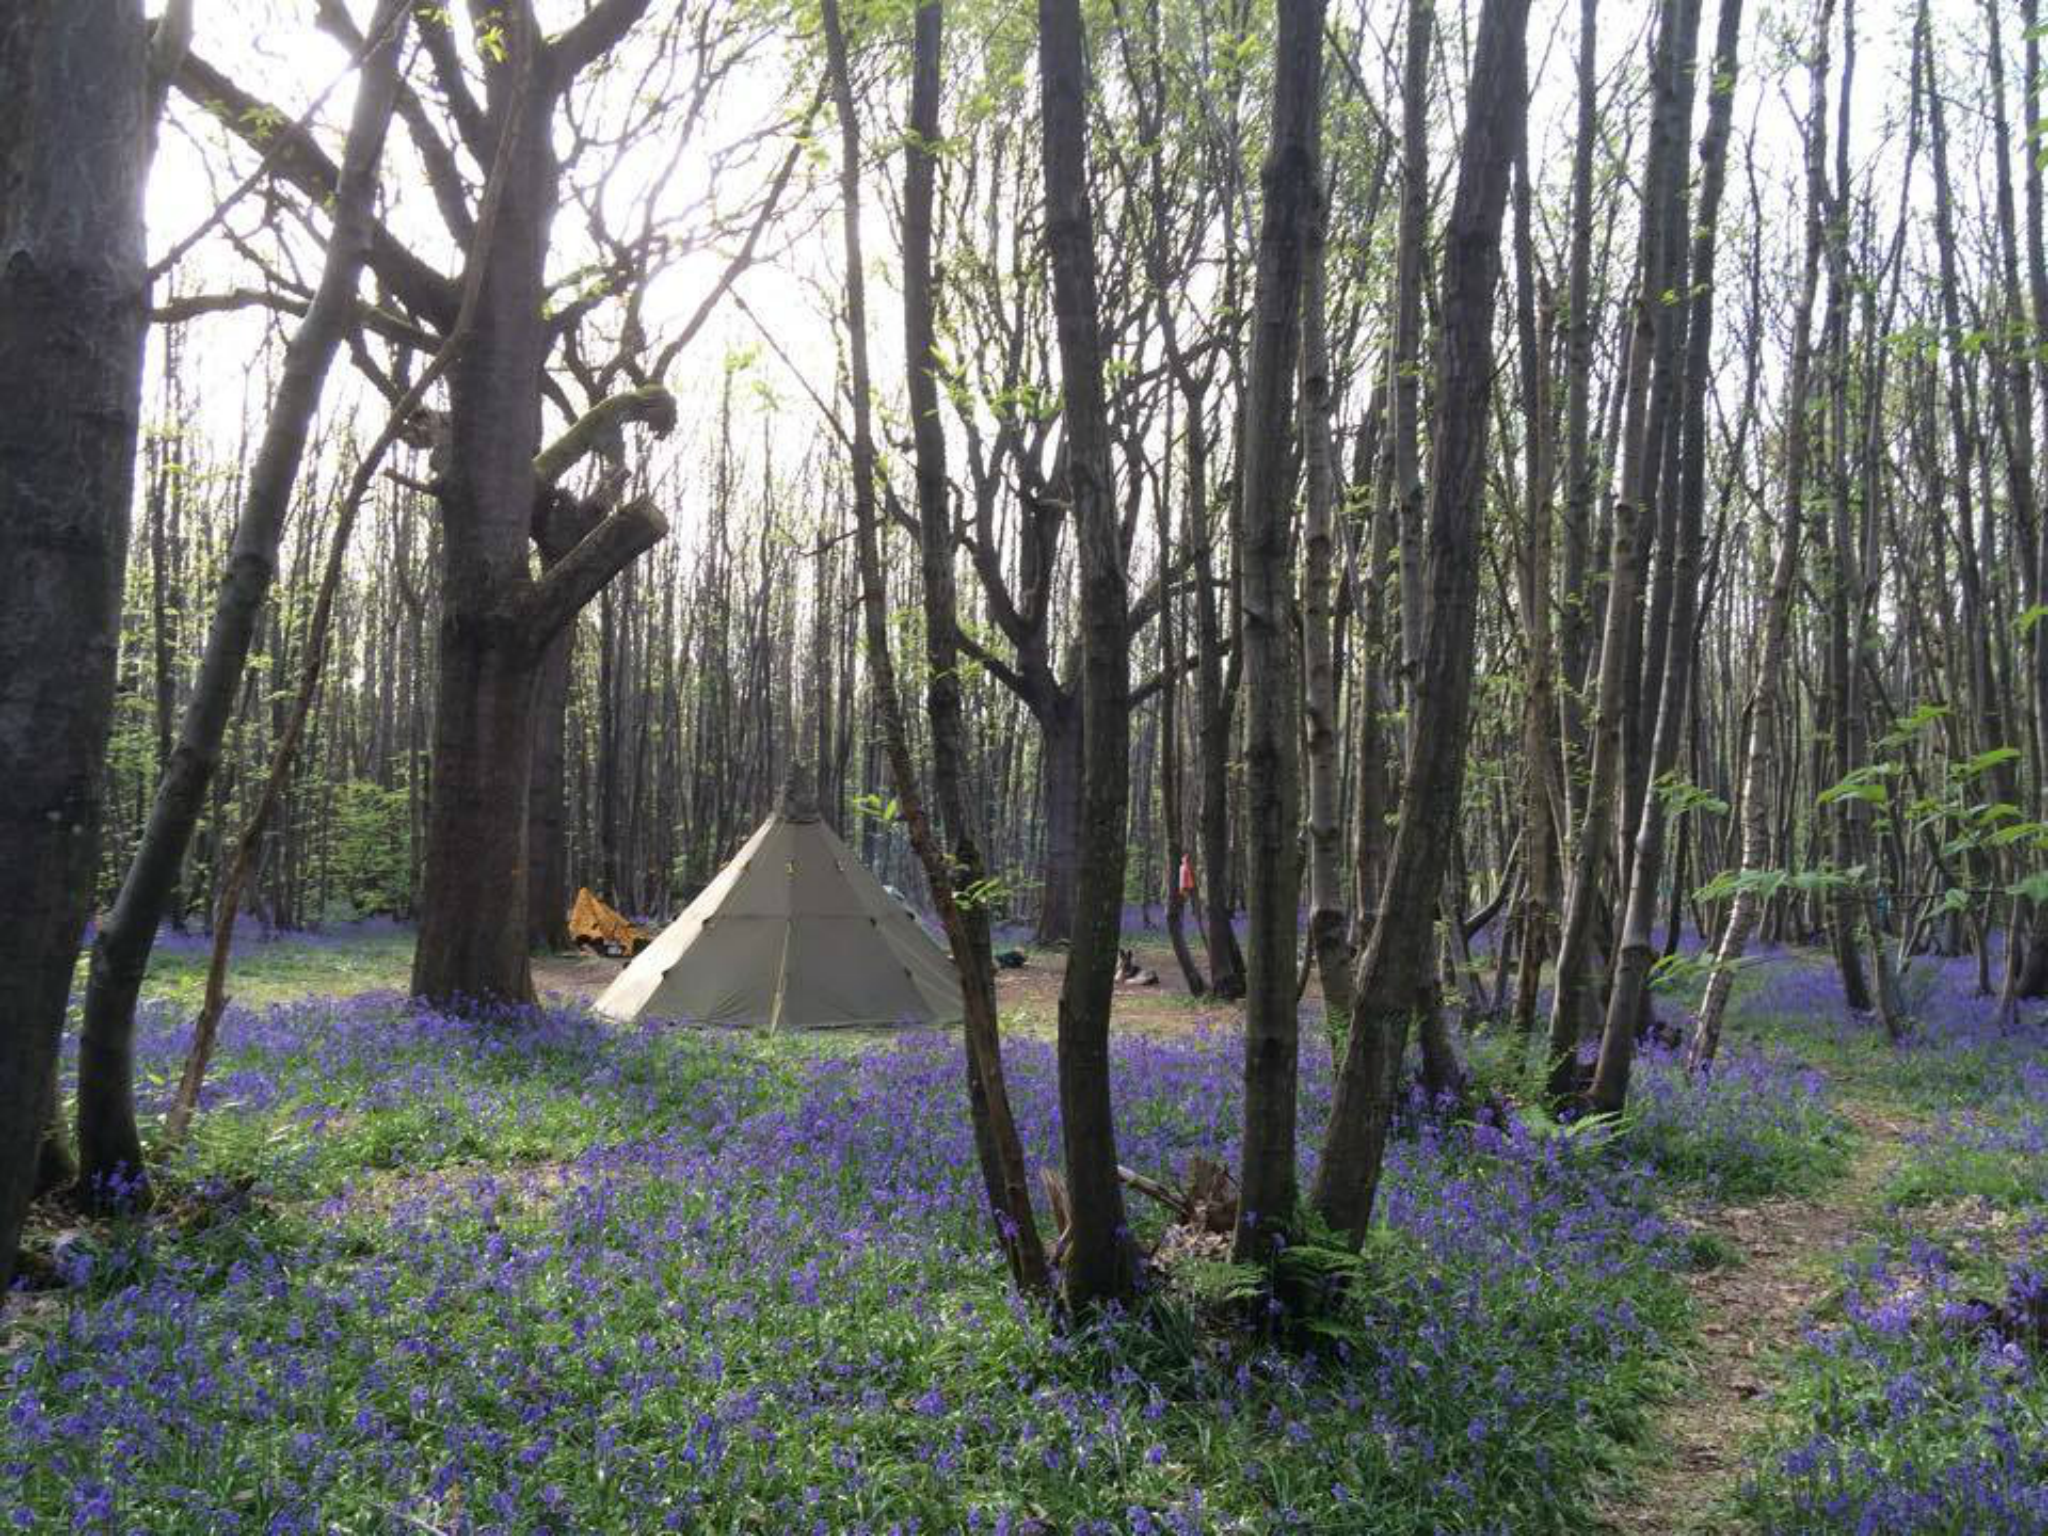 Tent in Forest with Lavender